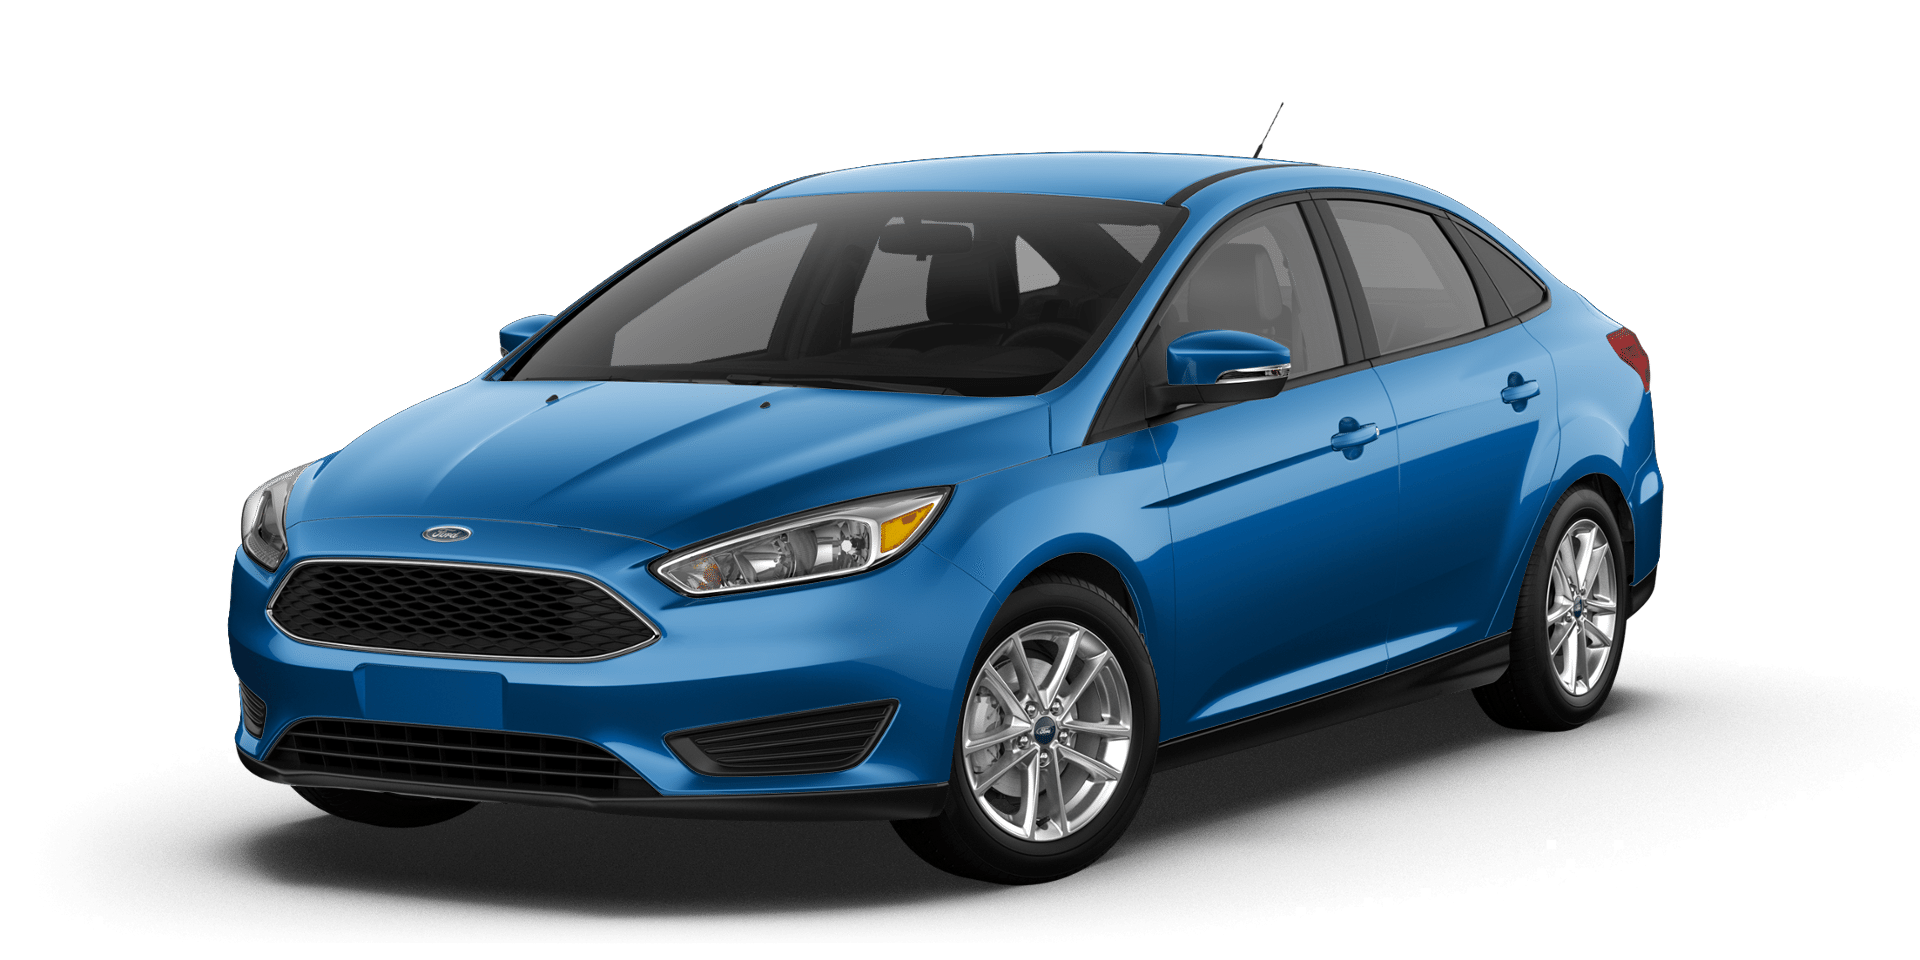 2016 ford focus png. For sale snellville